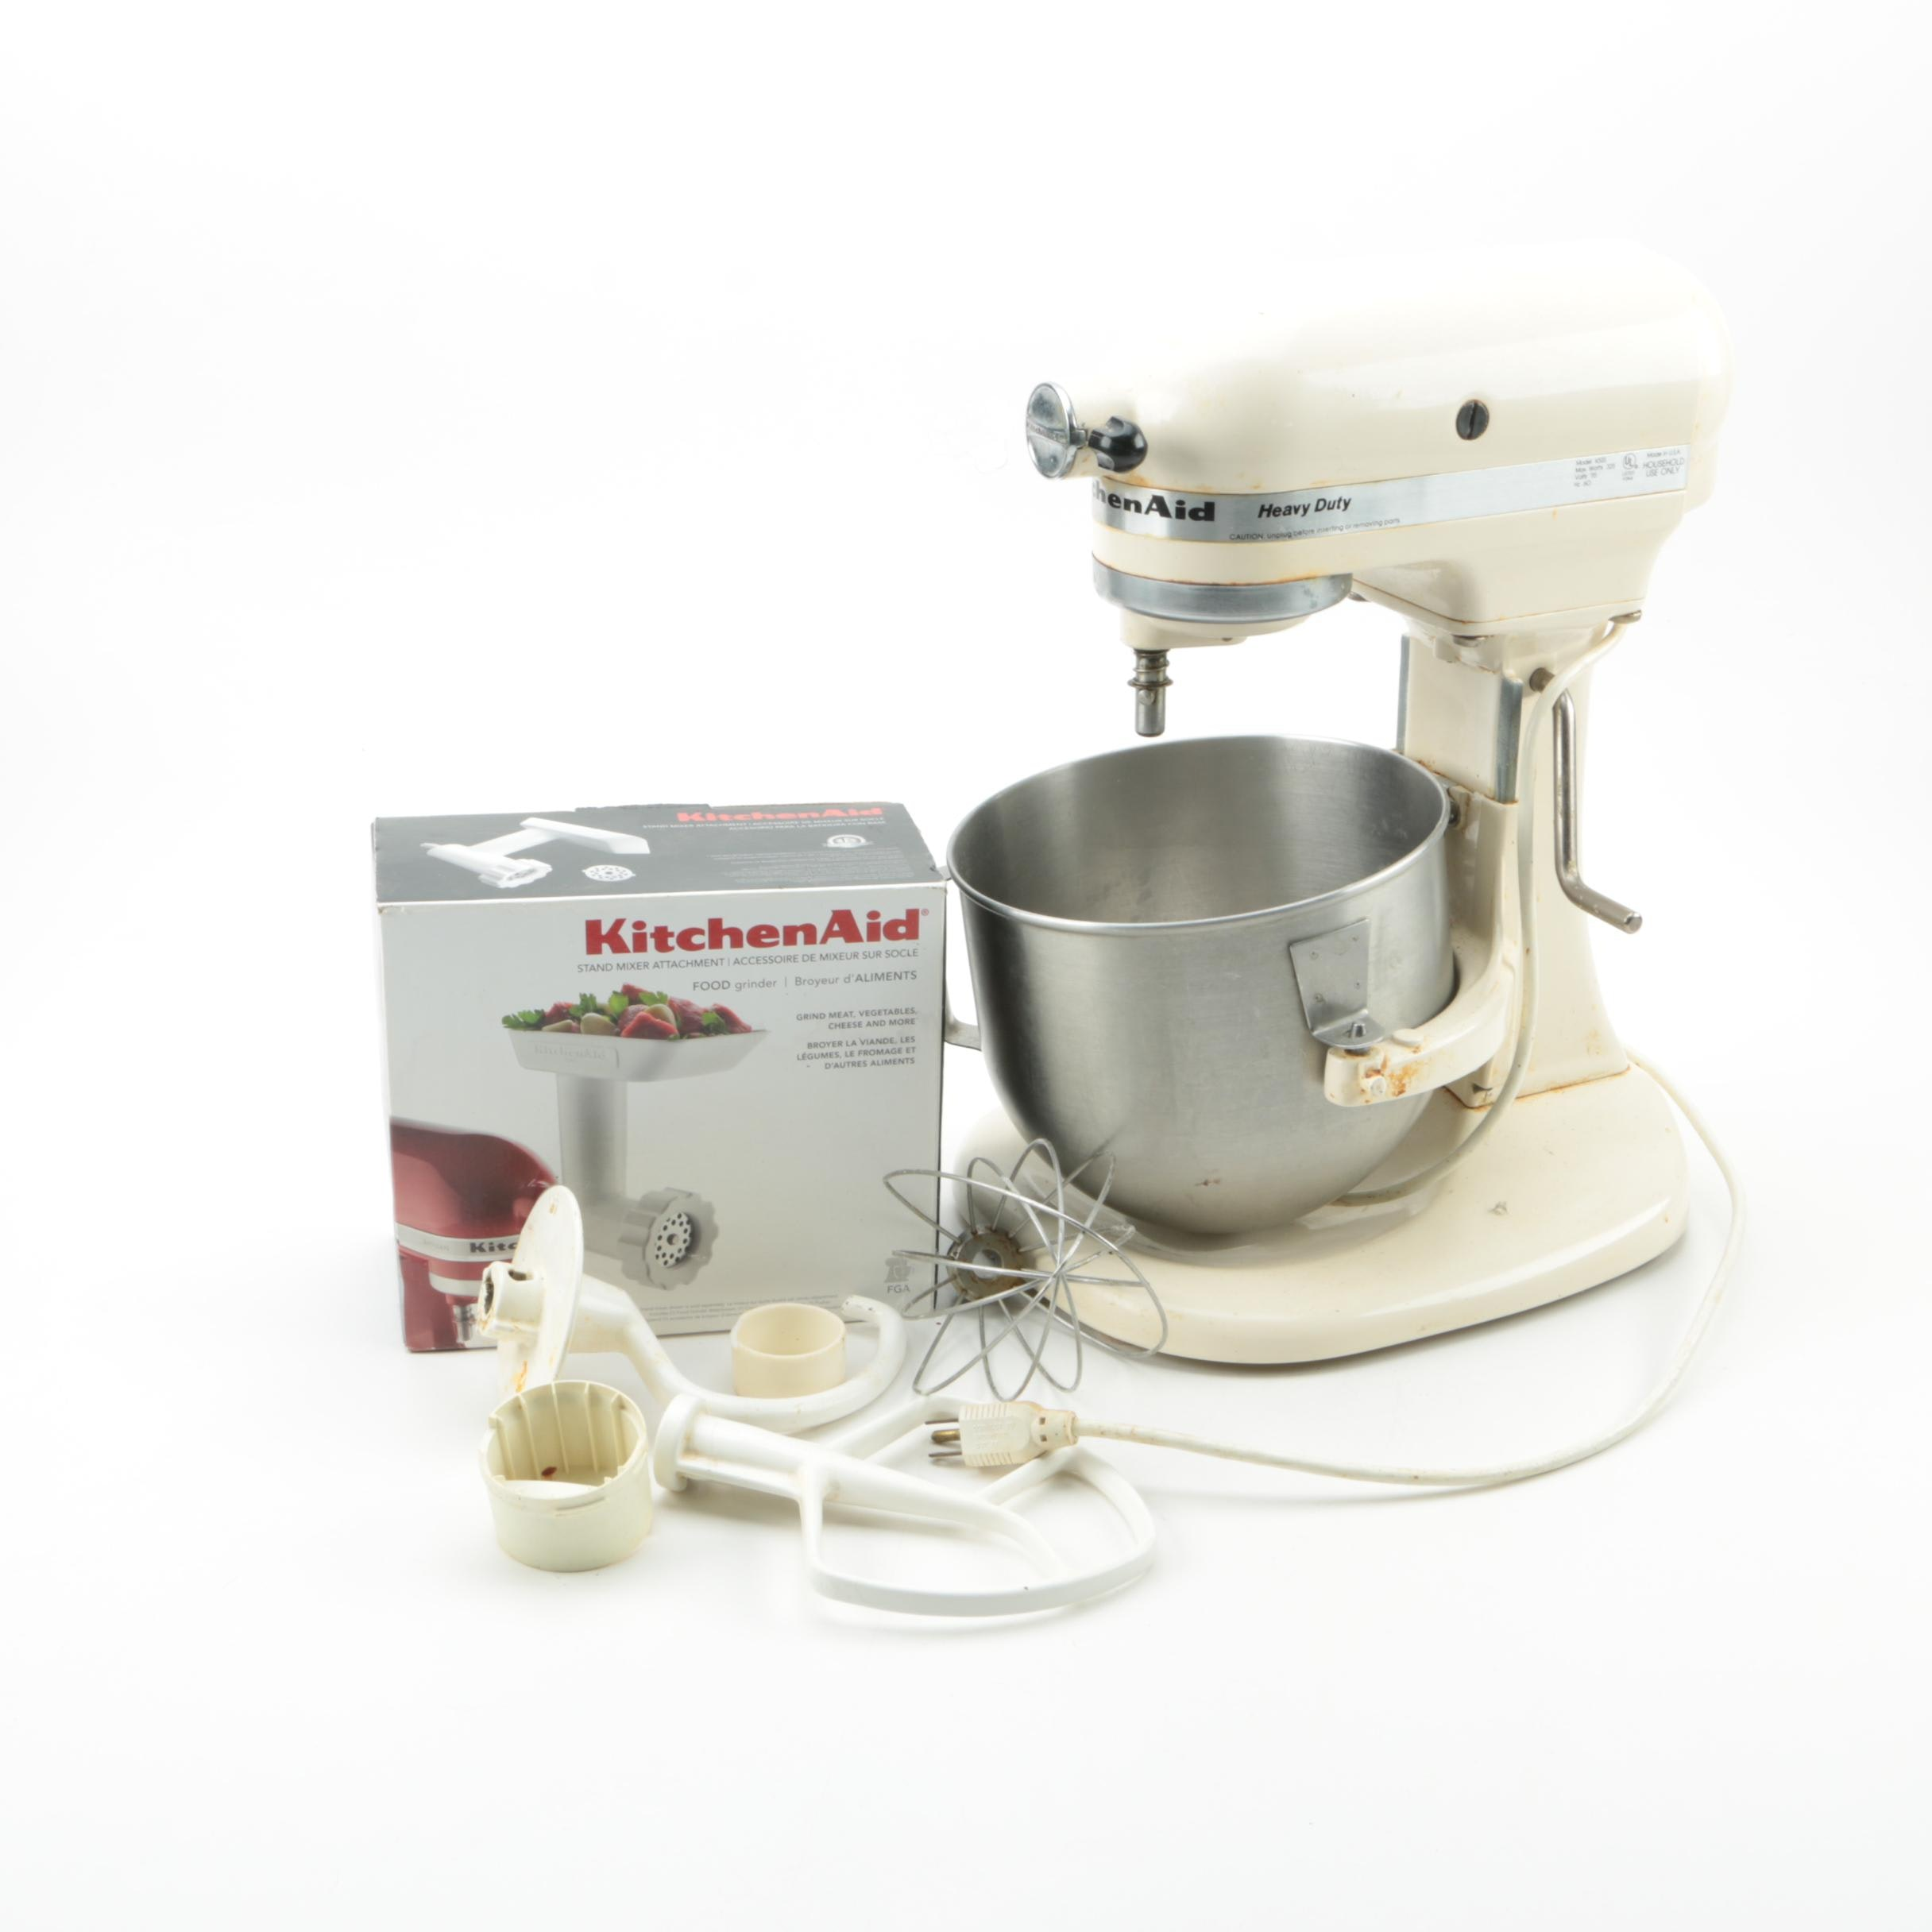 KitchenAid Heavy Duty Stand Mixer with Attachments